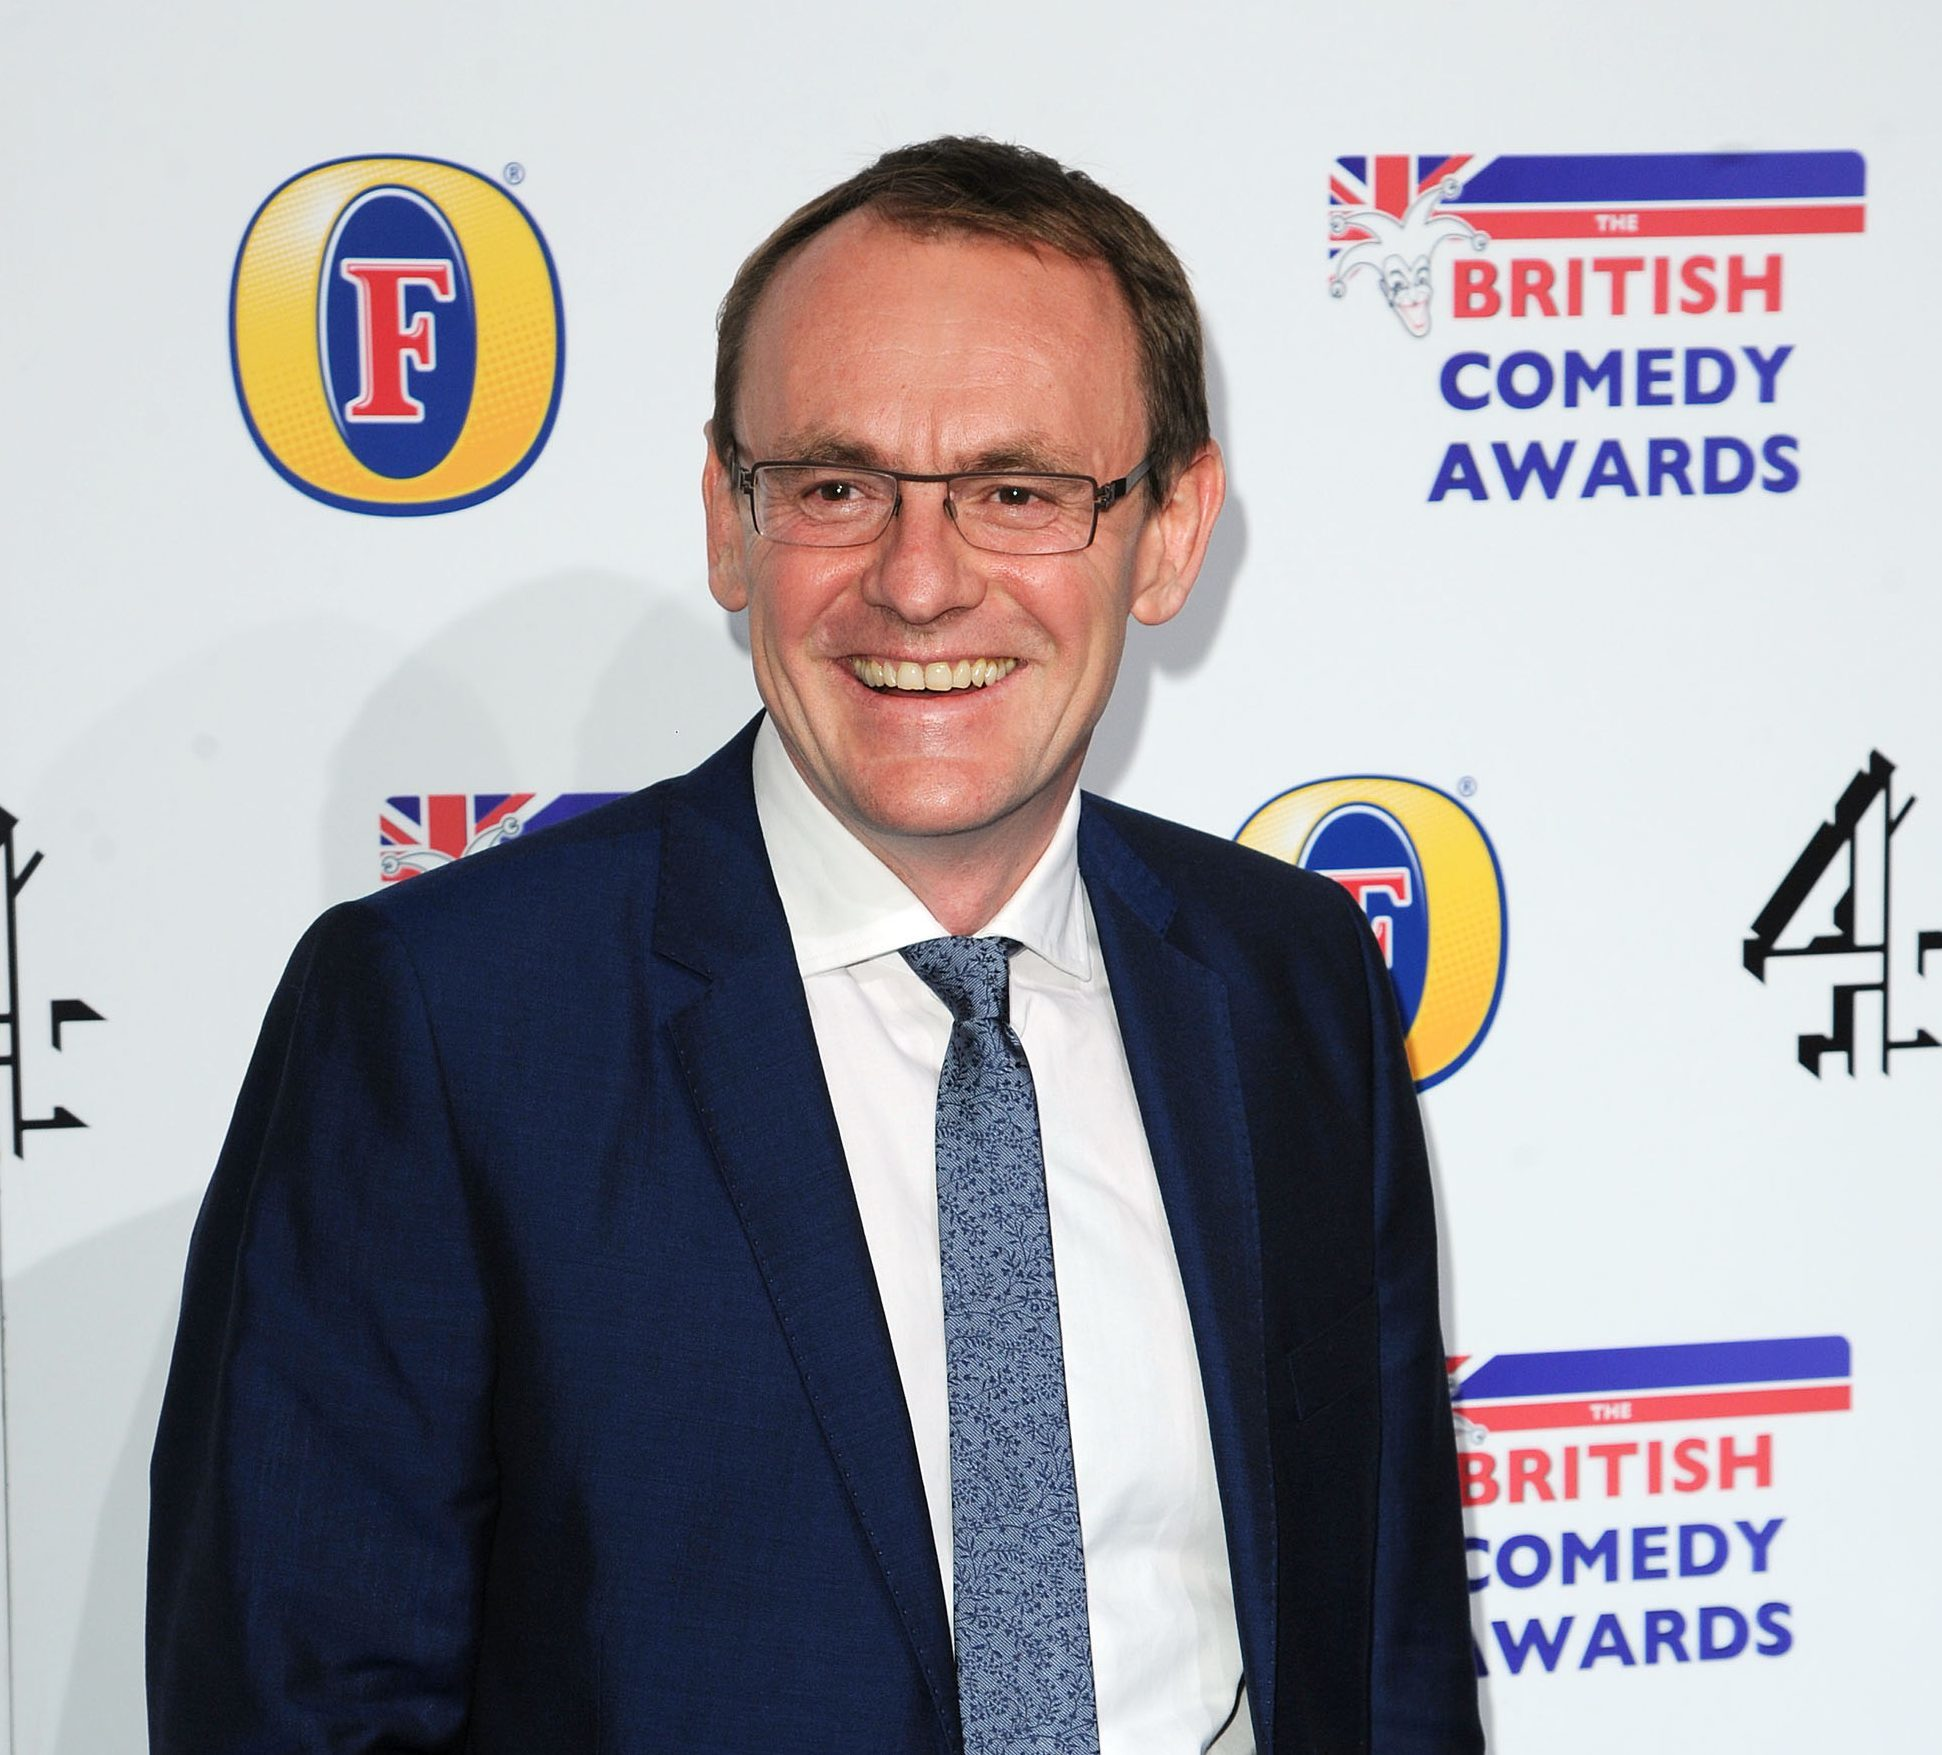 Comedian Sean Lock will play two gigs at His Majesty's Theatre.